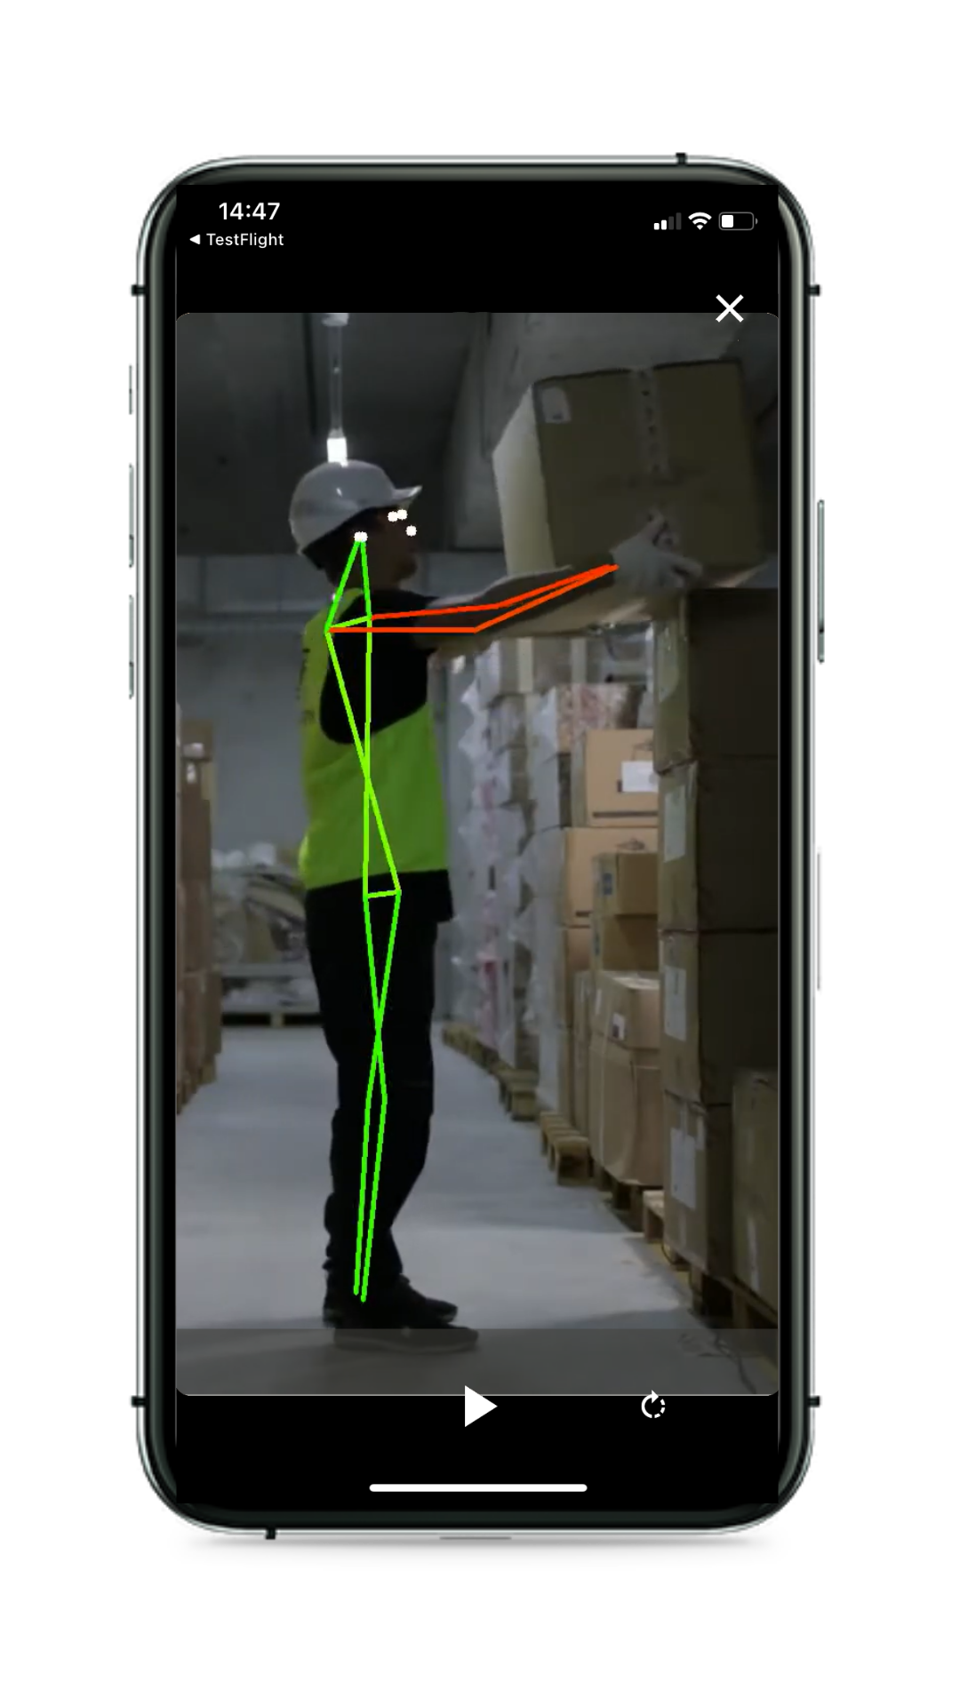 The SoterTask app uses video processed through a neural network to analyze the positions of various parts of the user's physique.